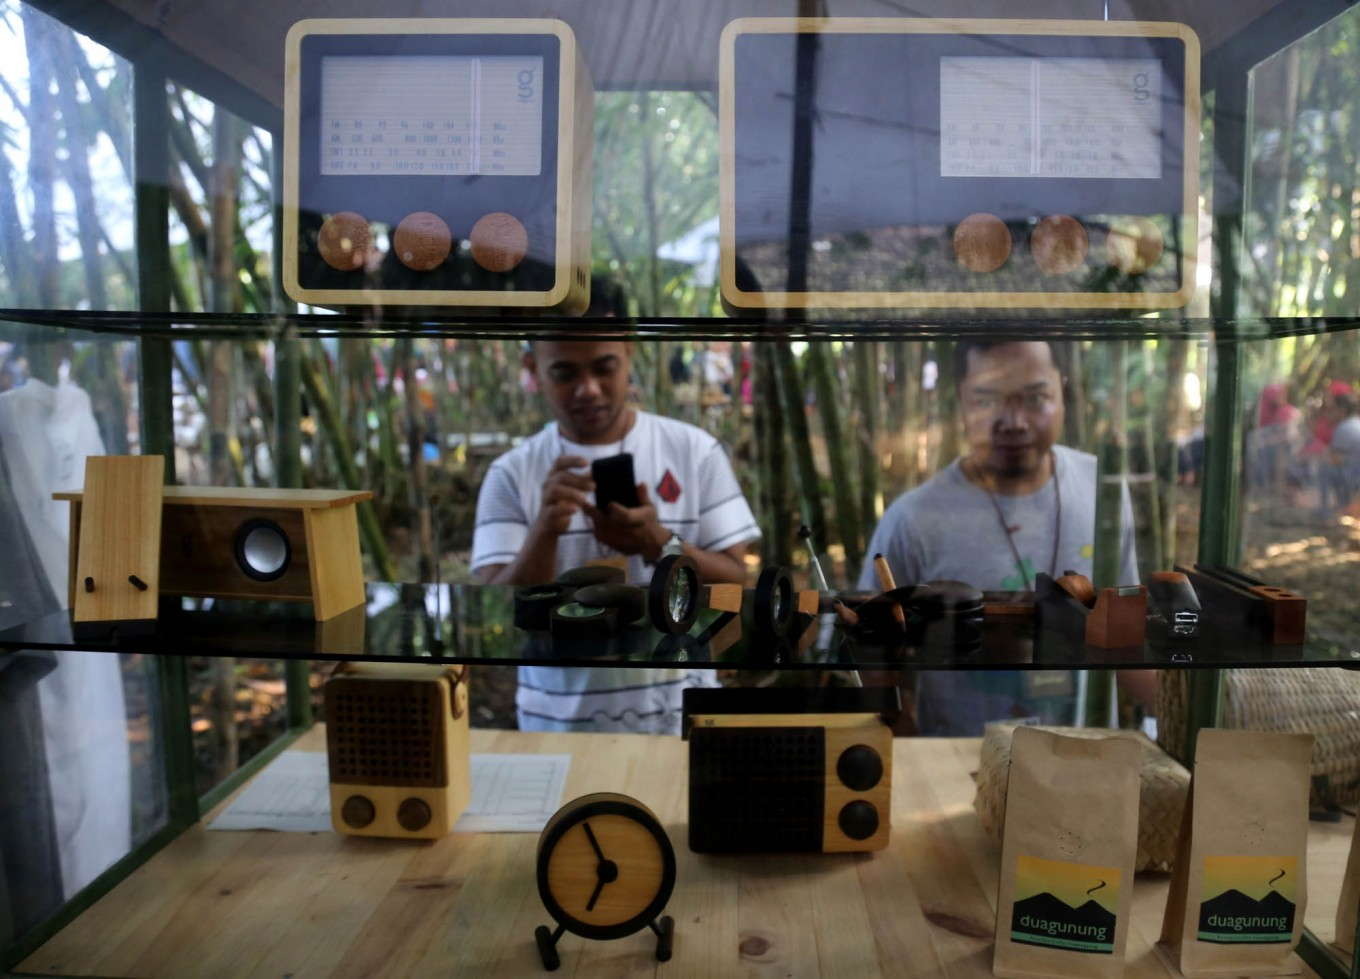 Visitors observe locally made wooden radios in a booth. JP/Ganug Nugroho Adi